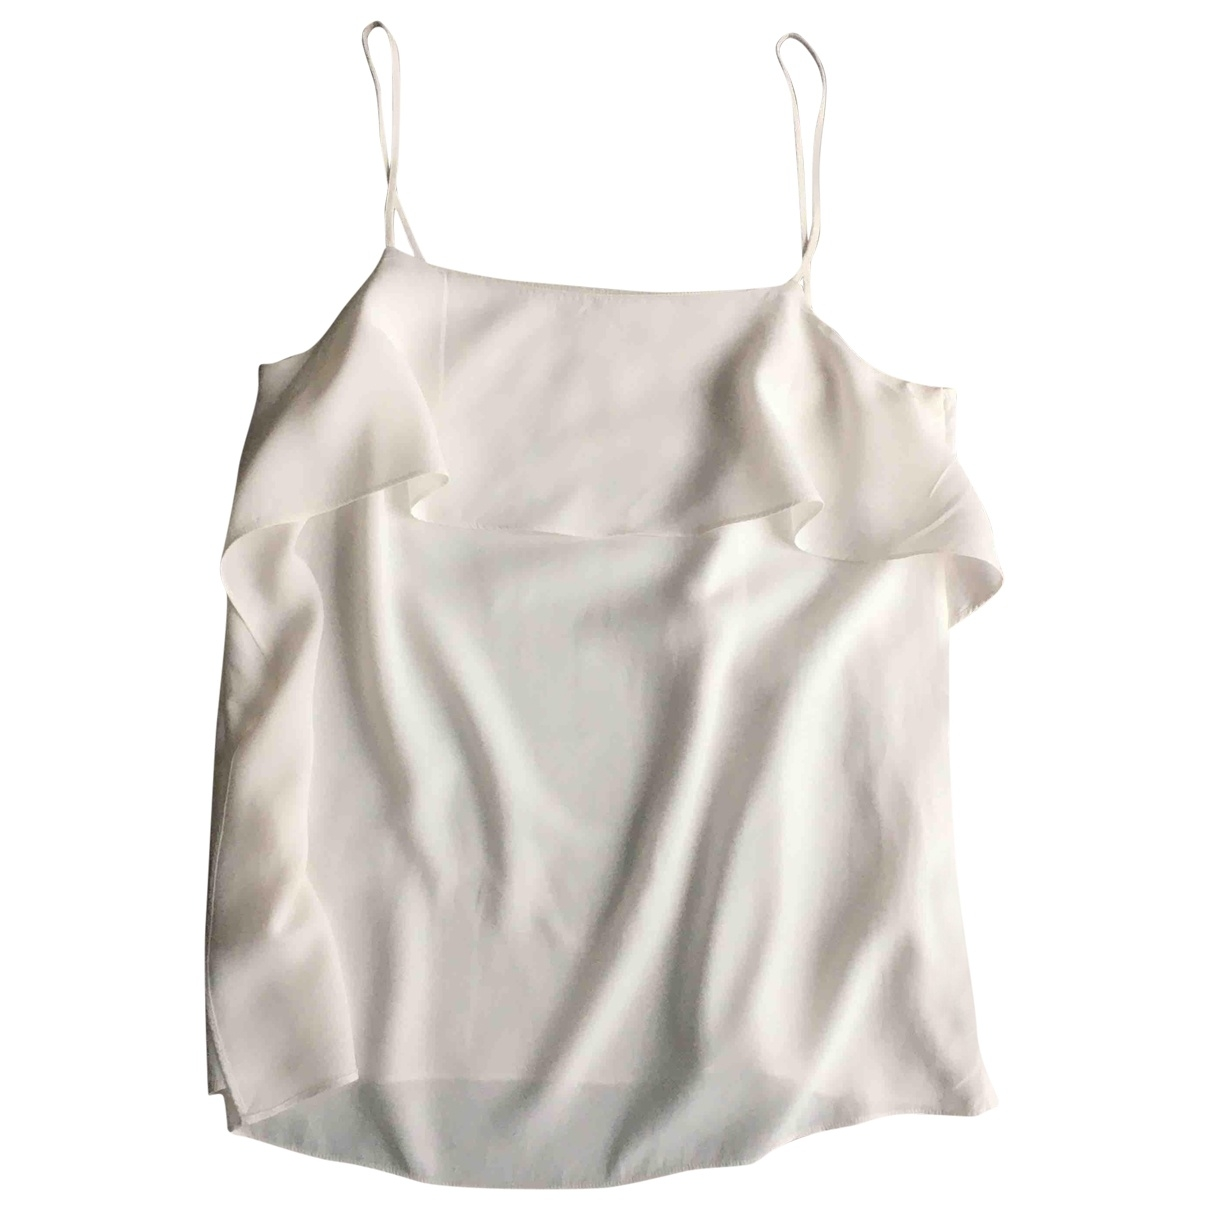 & Stories \N White  top for Women 38 FR